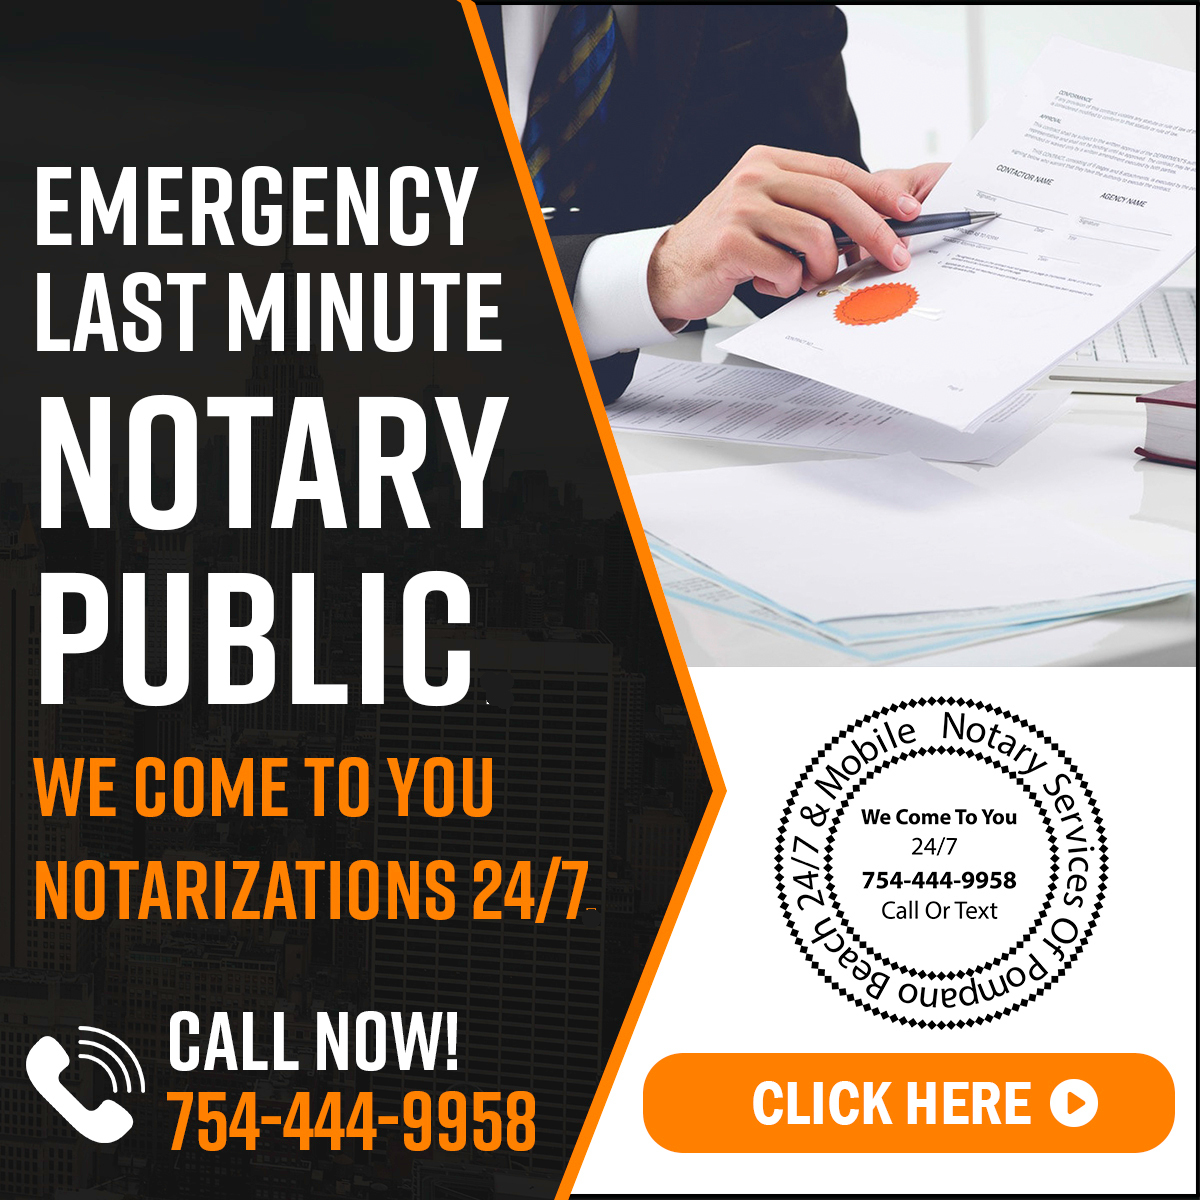 Emergency Notary Public Services Last Minute